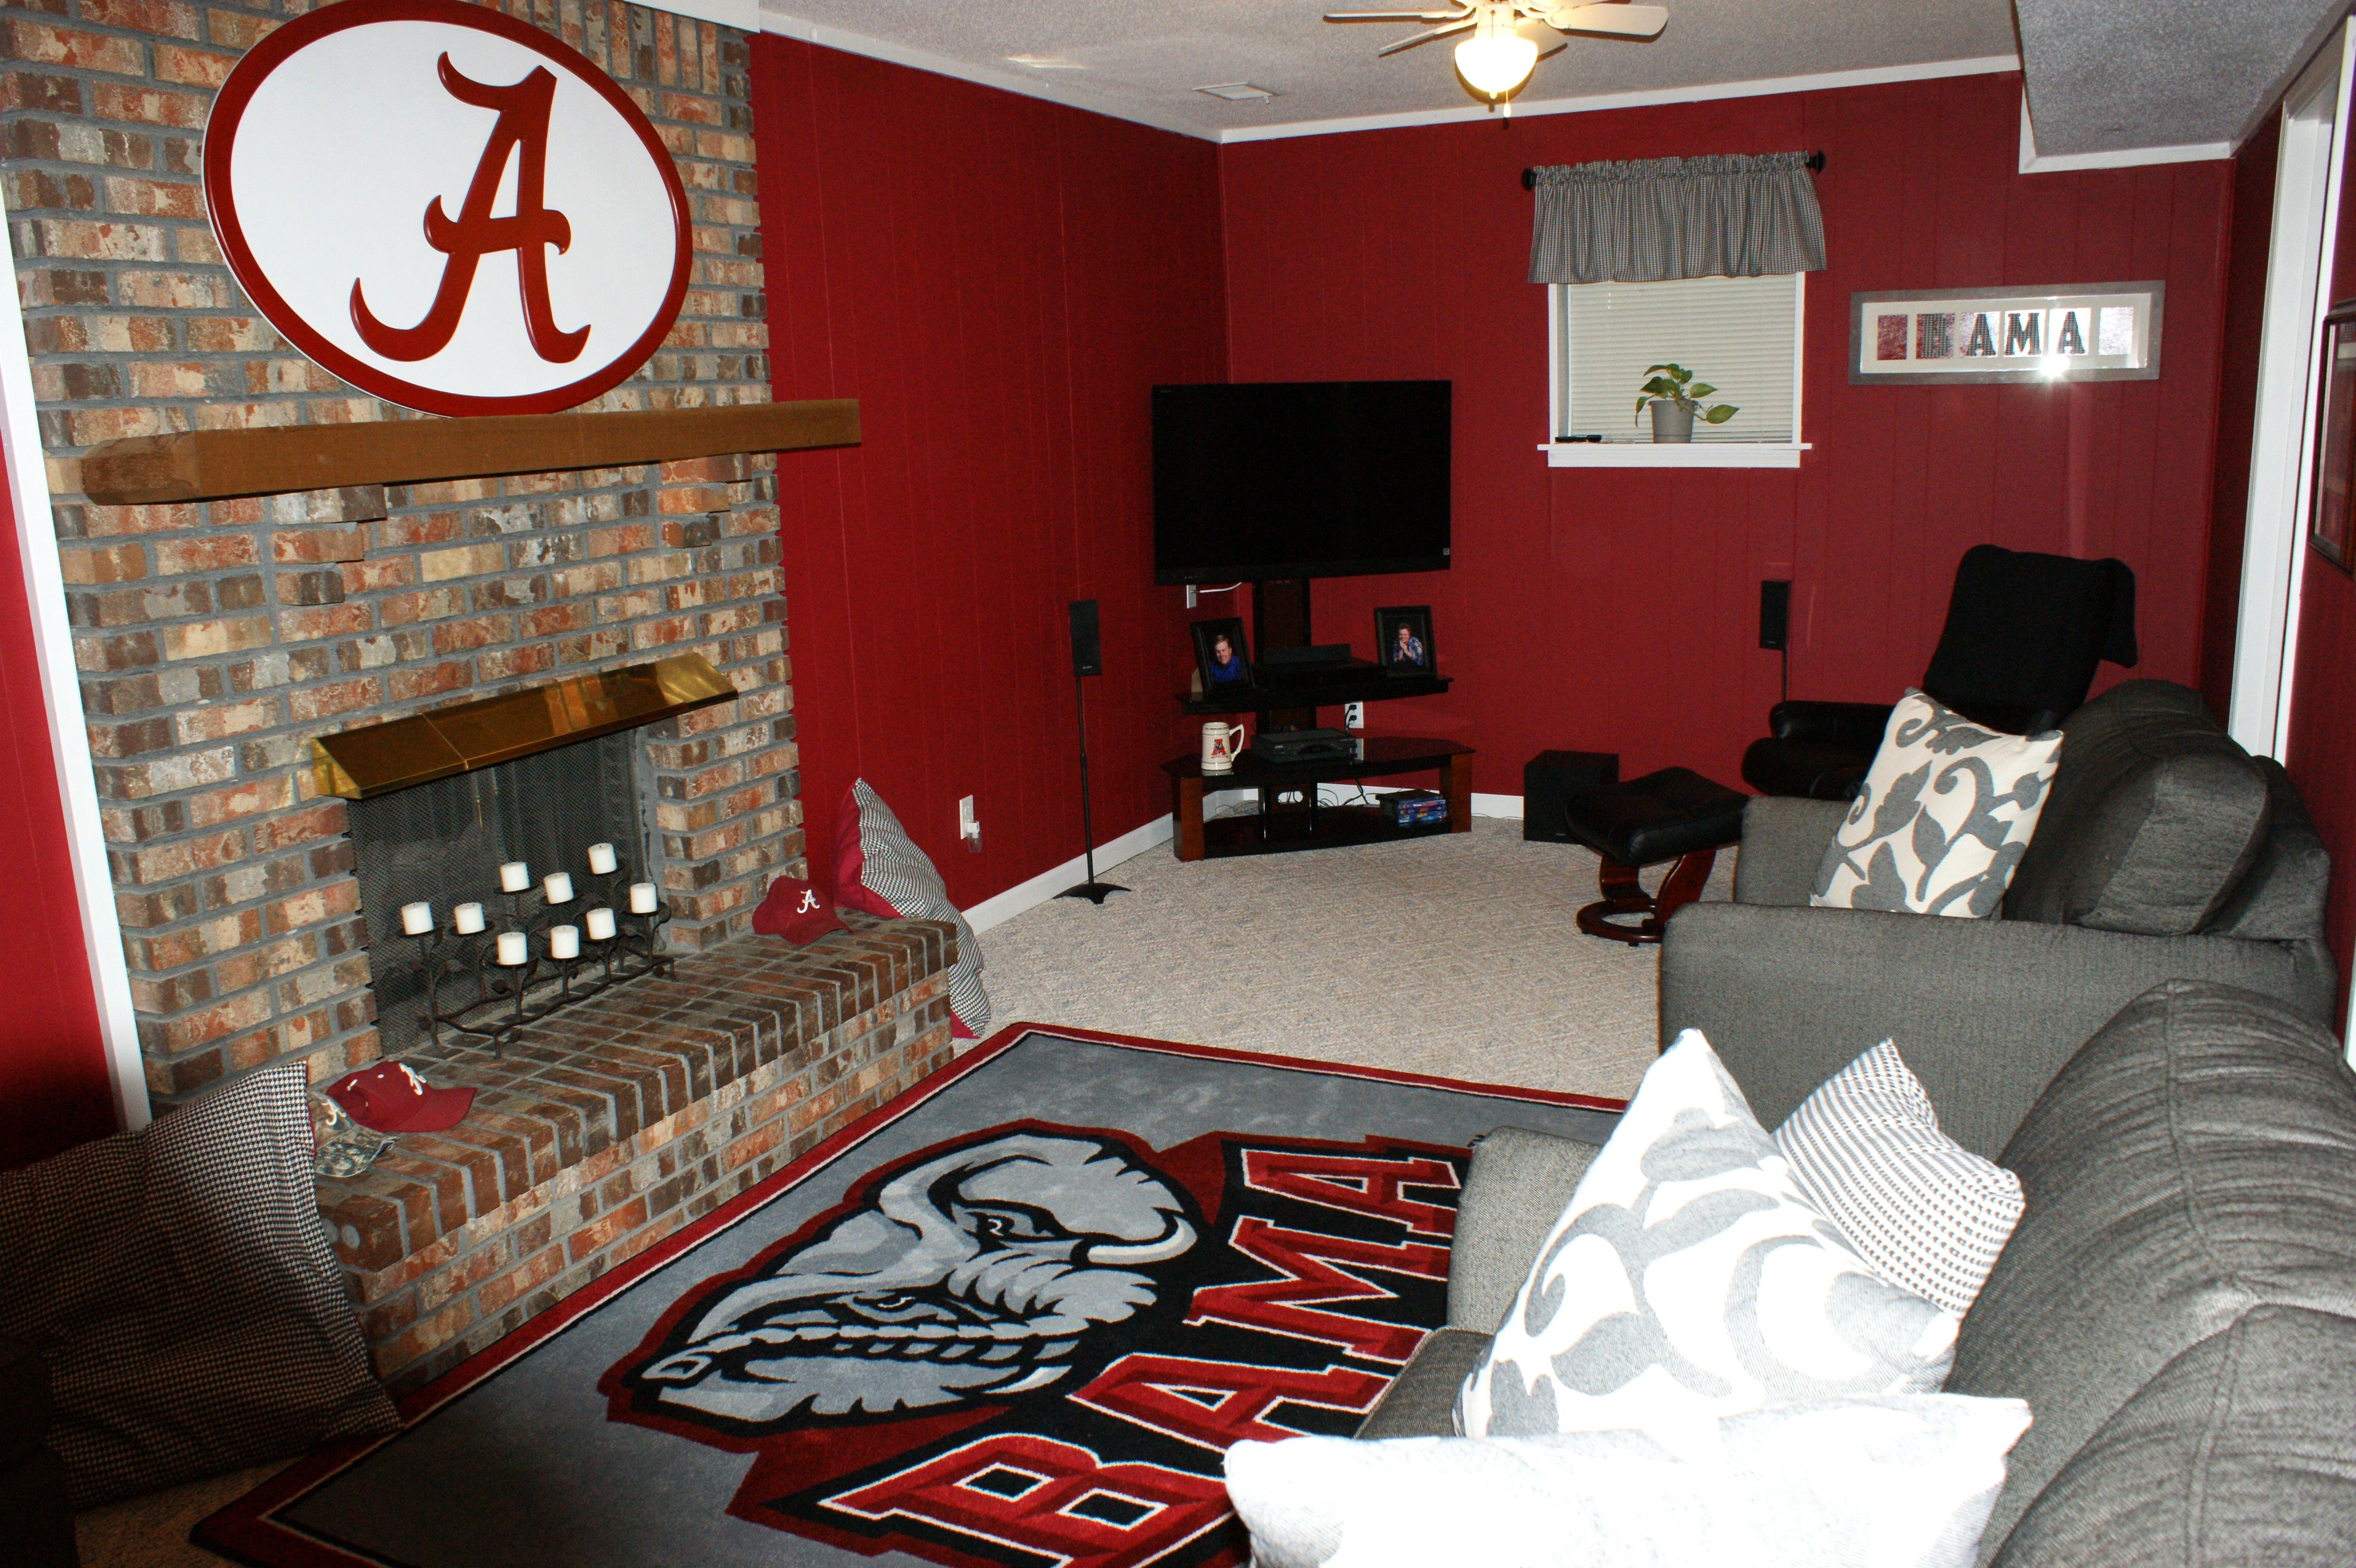 Forget The Man Cave Part...I Want One Of These In My House